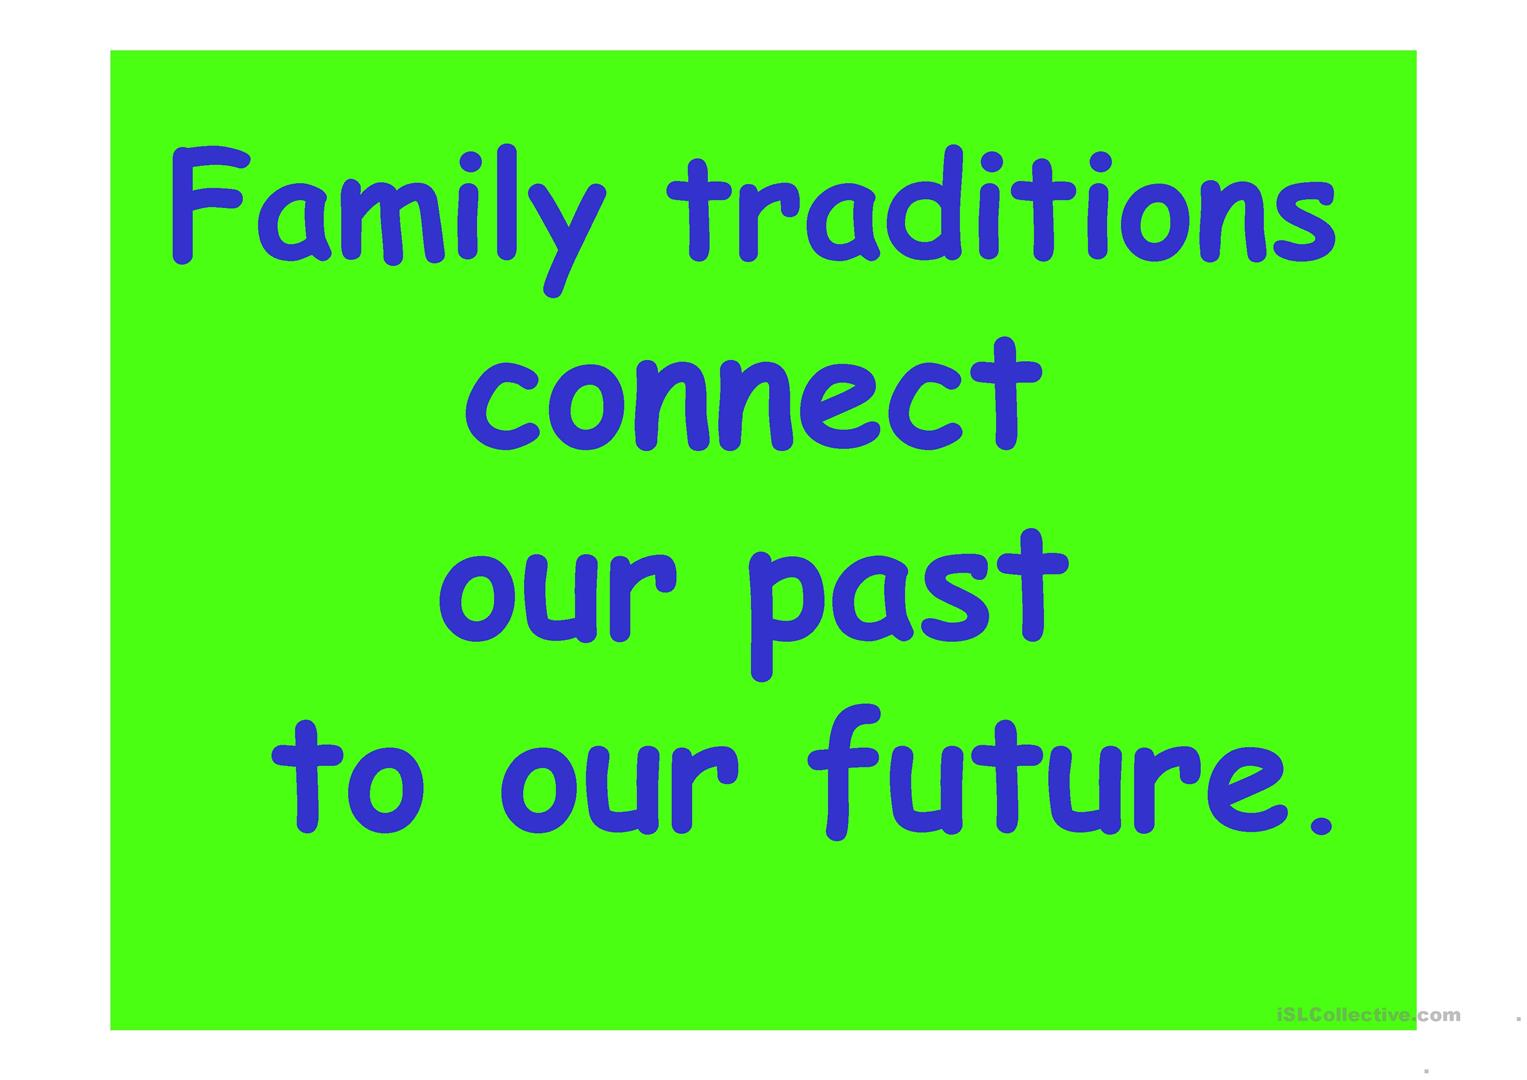 esl coloring pages family traditions - photo#34